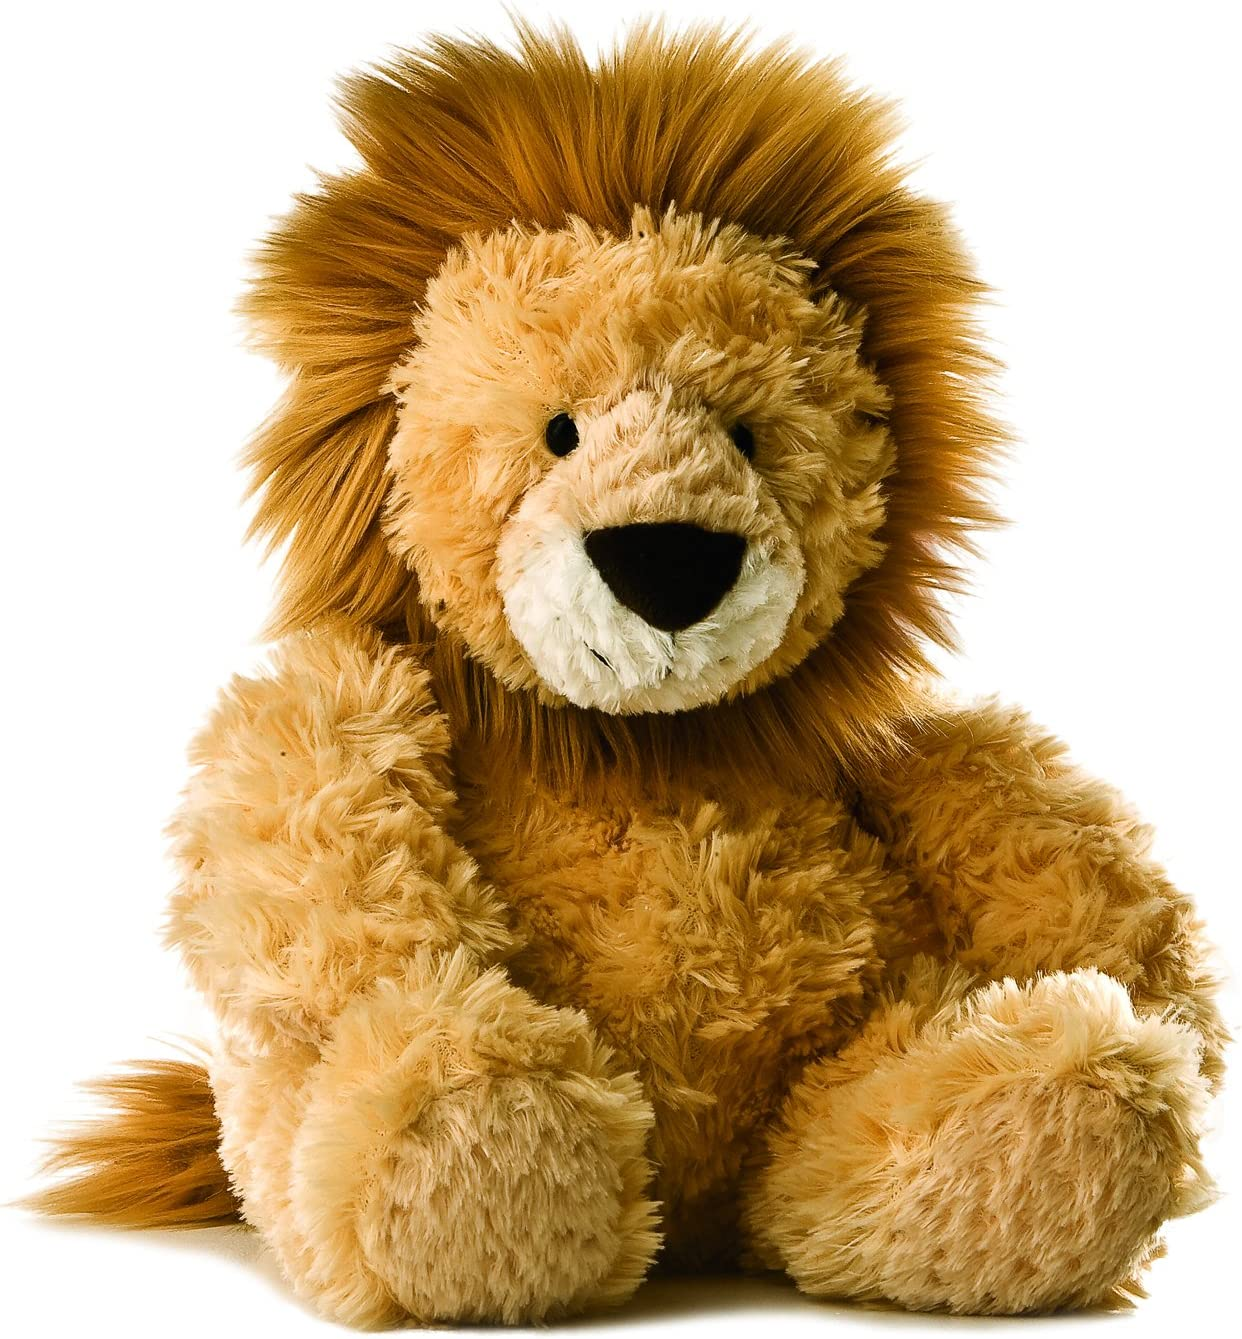 Top 15 Best Cute Stuffed Animals (2020 Reviews & Buying Guide) 5